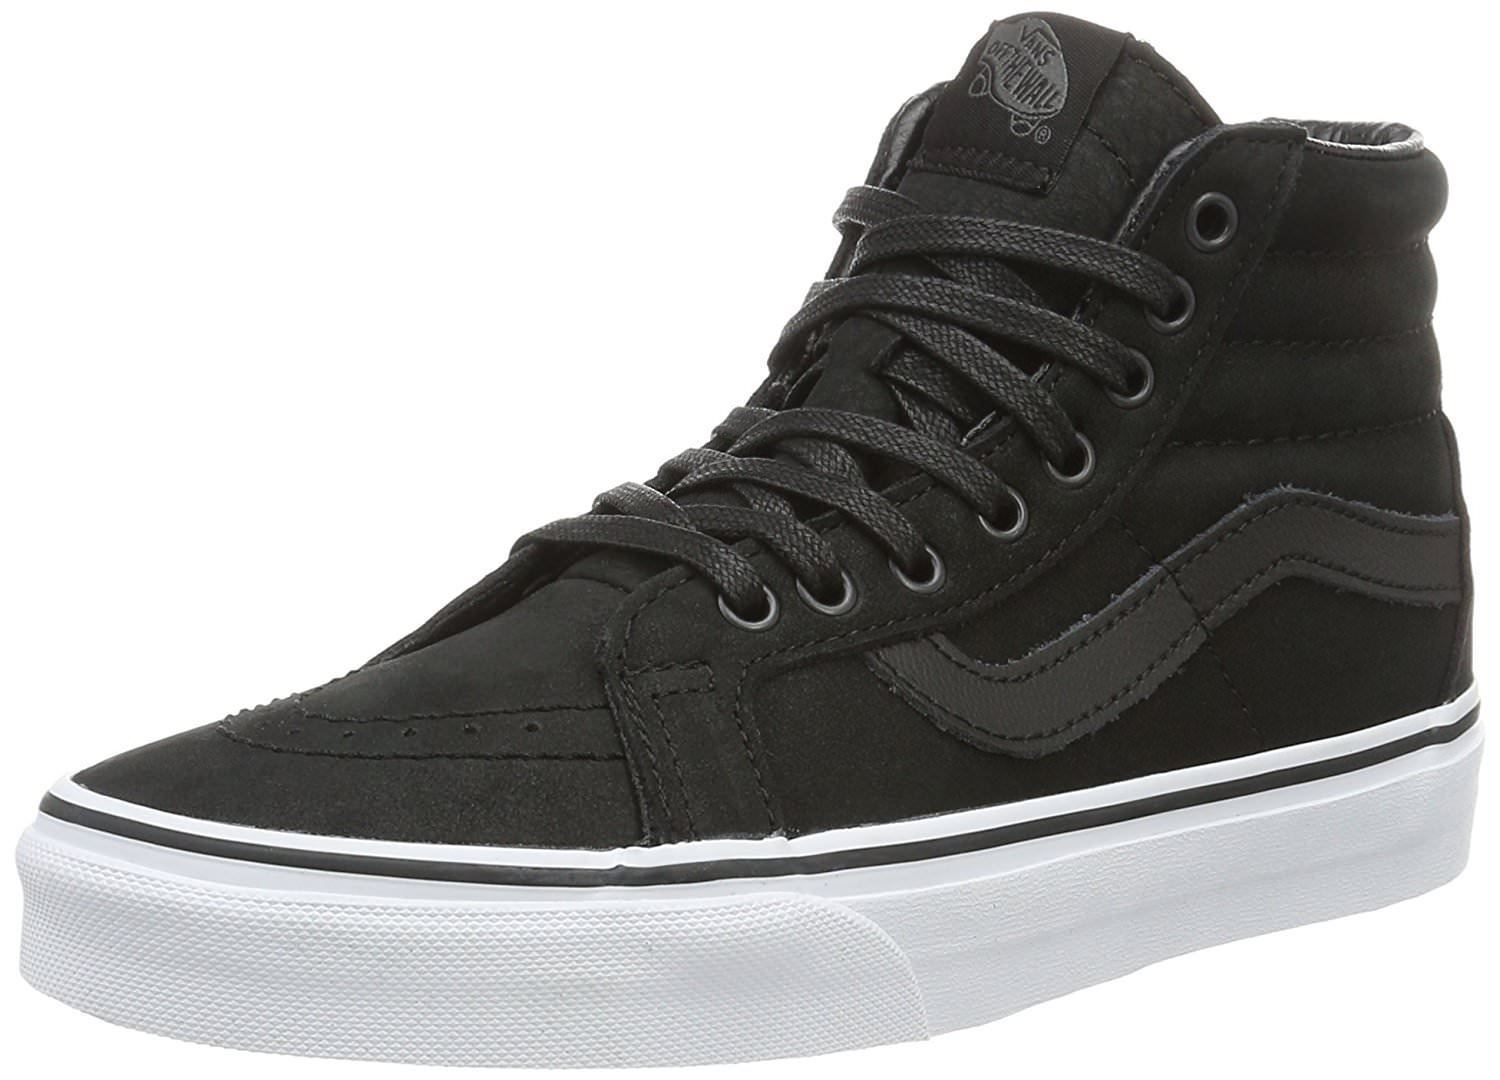 e93f0159f2c48f New Vans Unisex Sk8-Hi Reissue Premium and 47 similar items